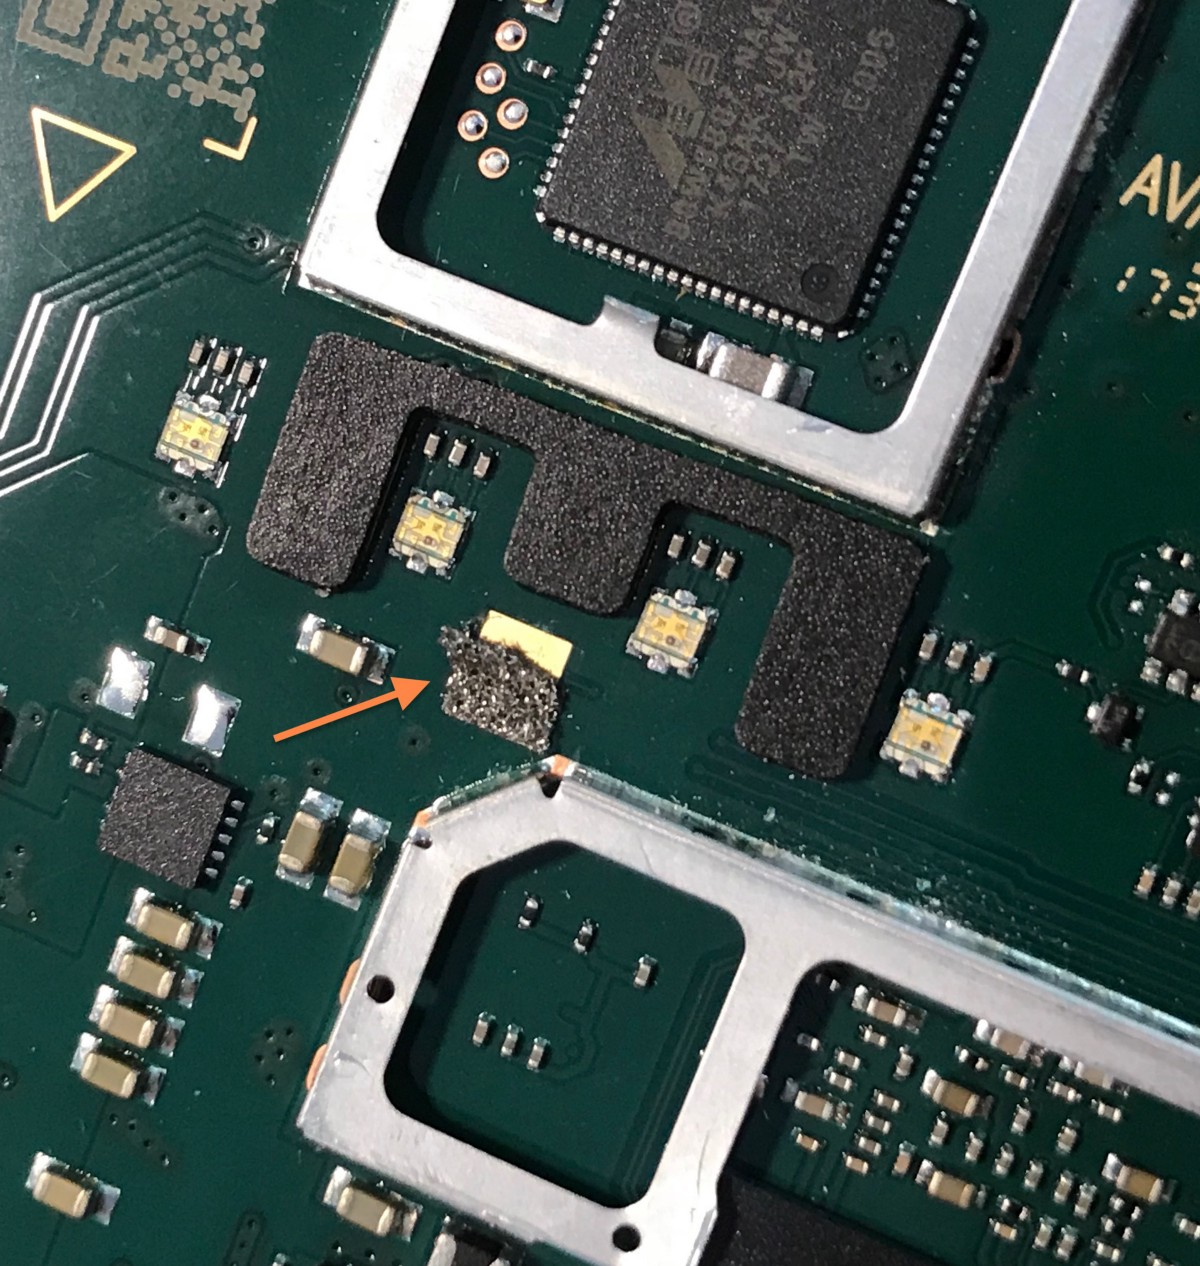 Google Home Mini Teardown Comparison To Echo Dot And Giving Capacitor A Sitting Crookedly On The Circuit Board Base What Could Have Caused Stray Change In Capacitance That Made Sensor Think Finger Was Hovering Above It Triggering Recording